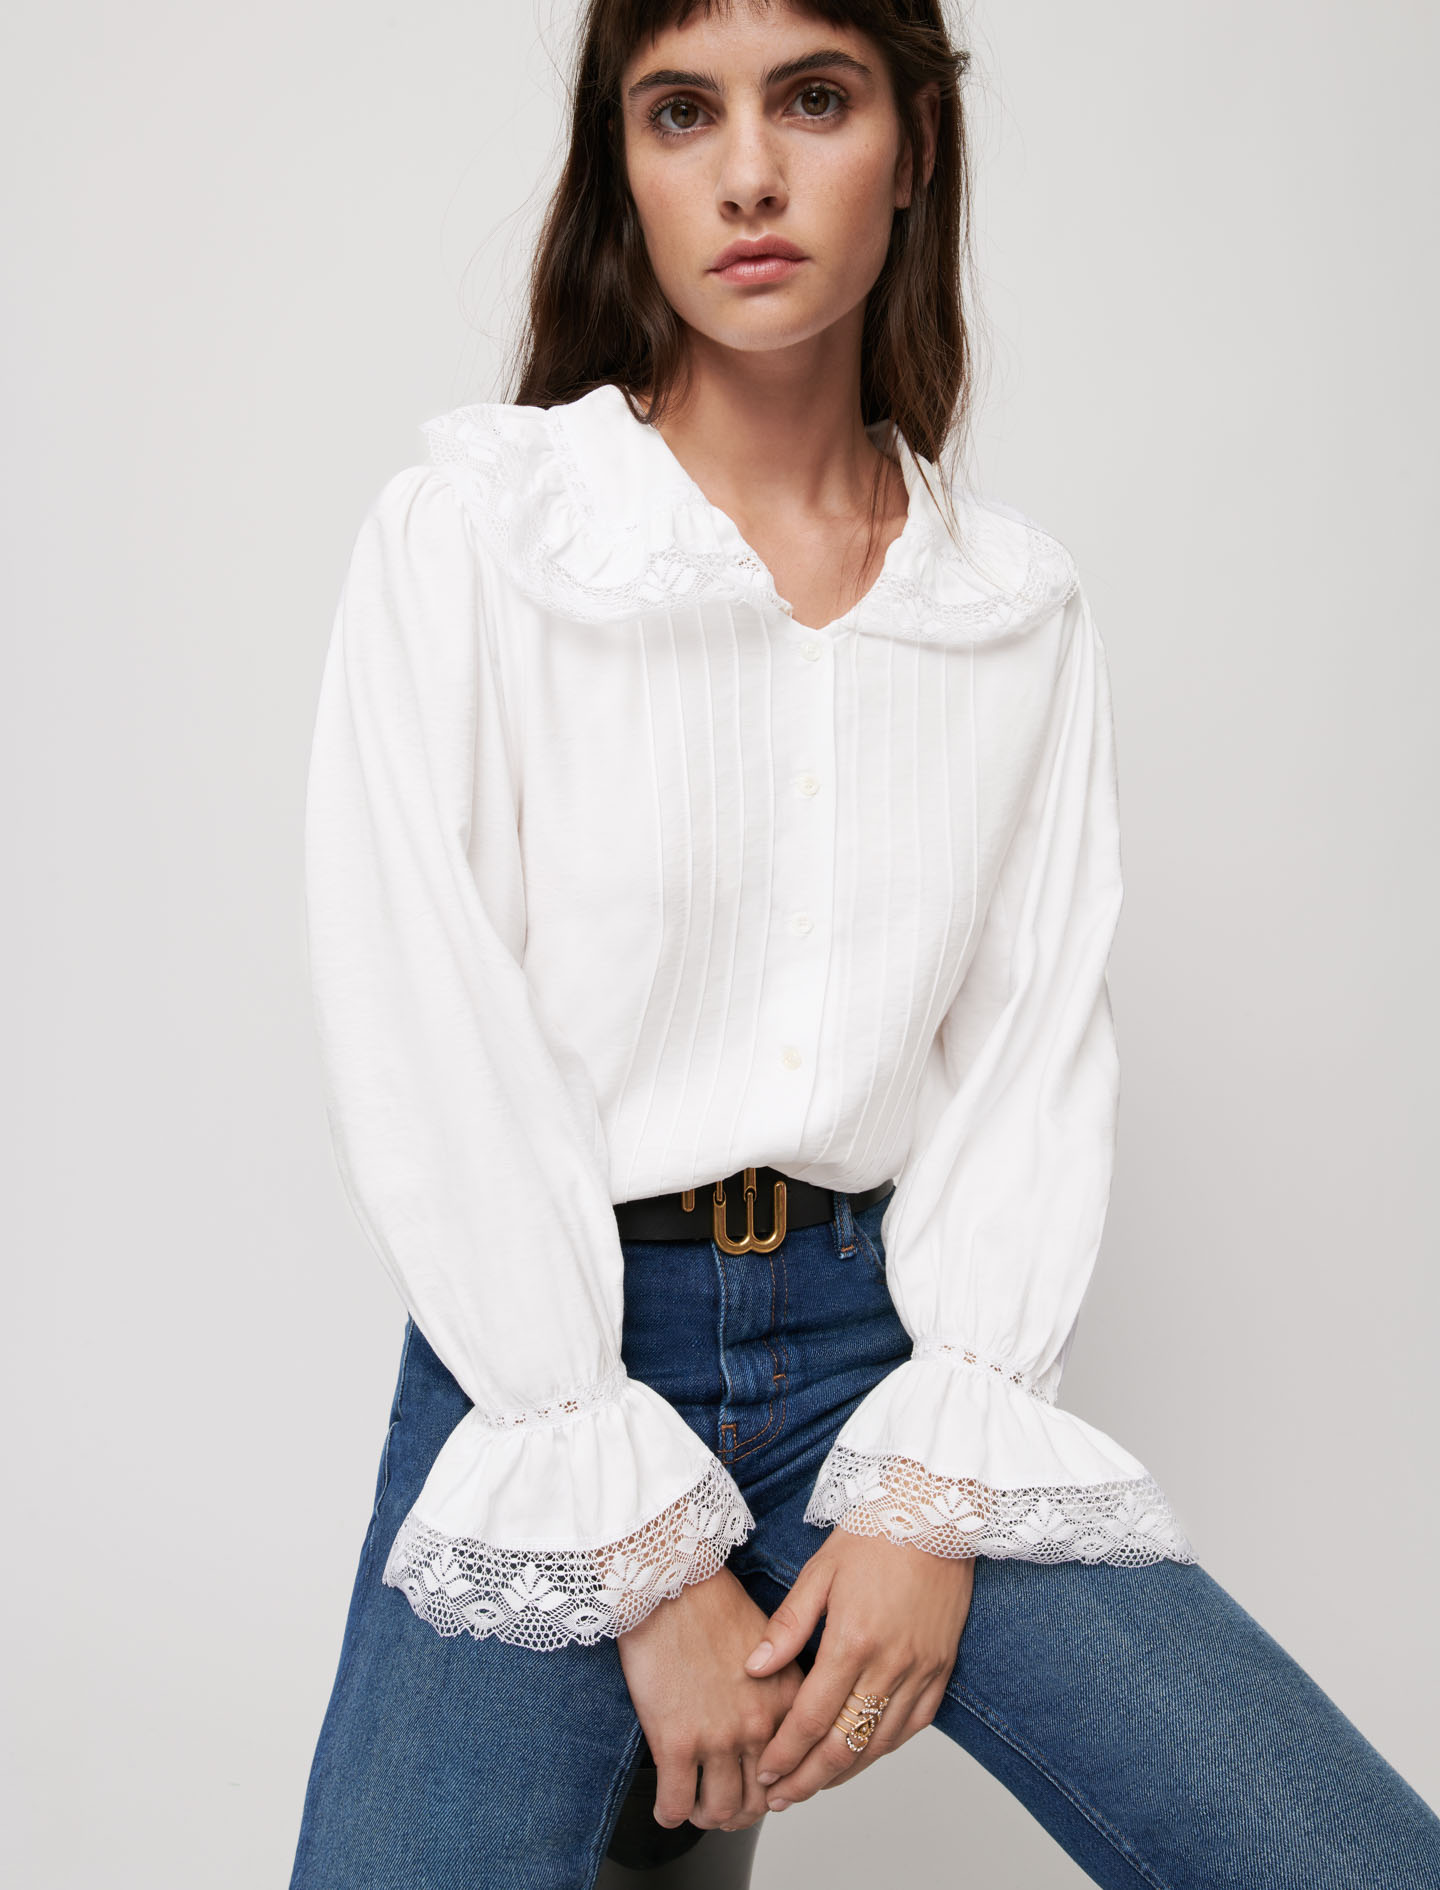 Veil and lace shirt - White